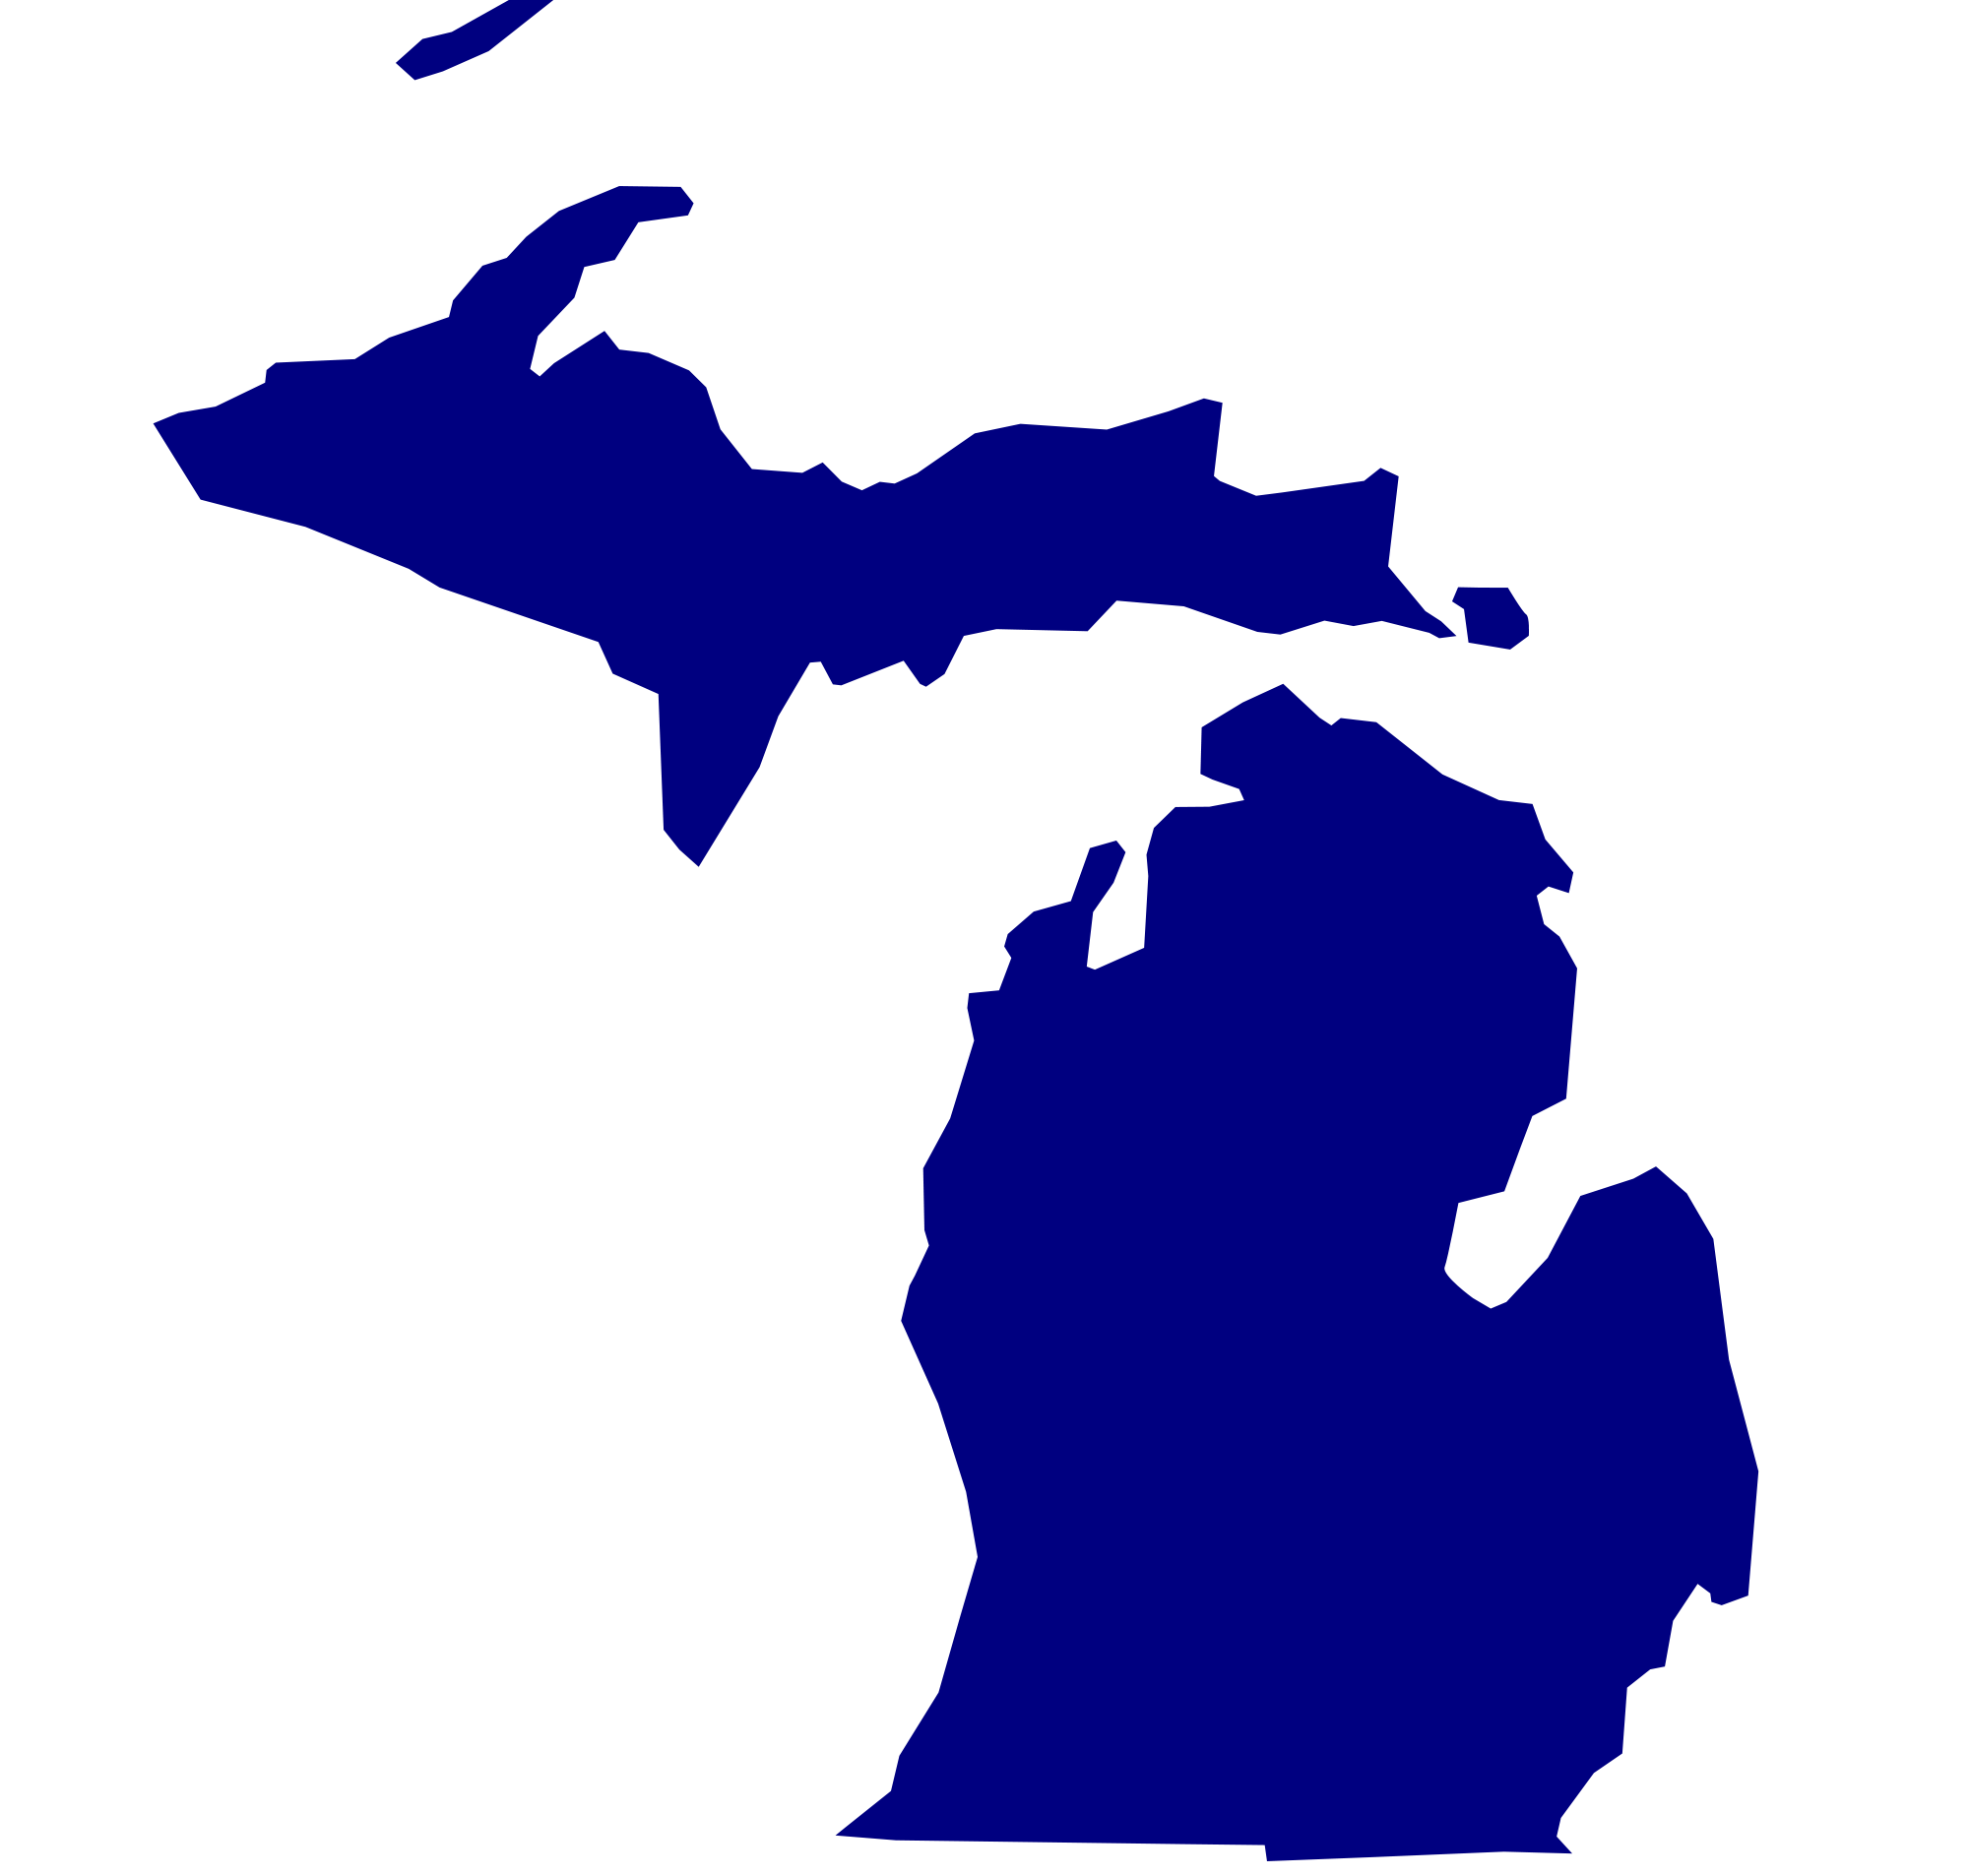 Michigan svg #18, Download drawings